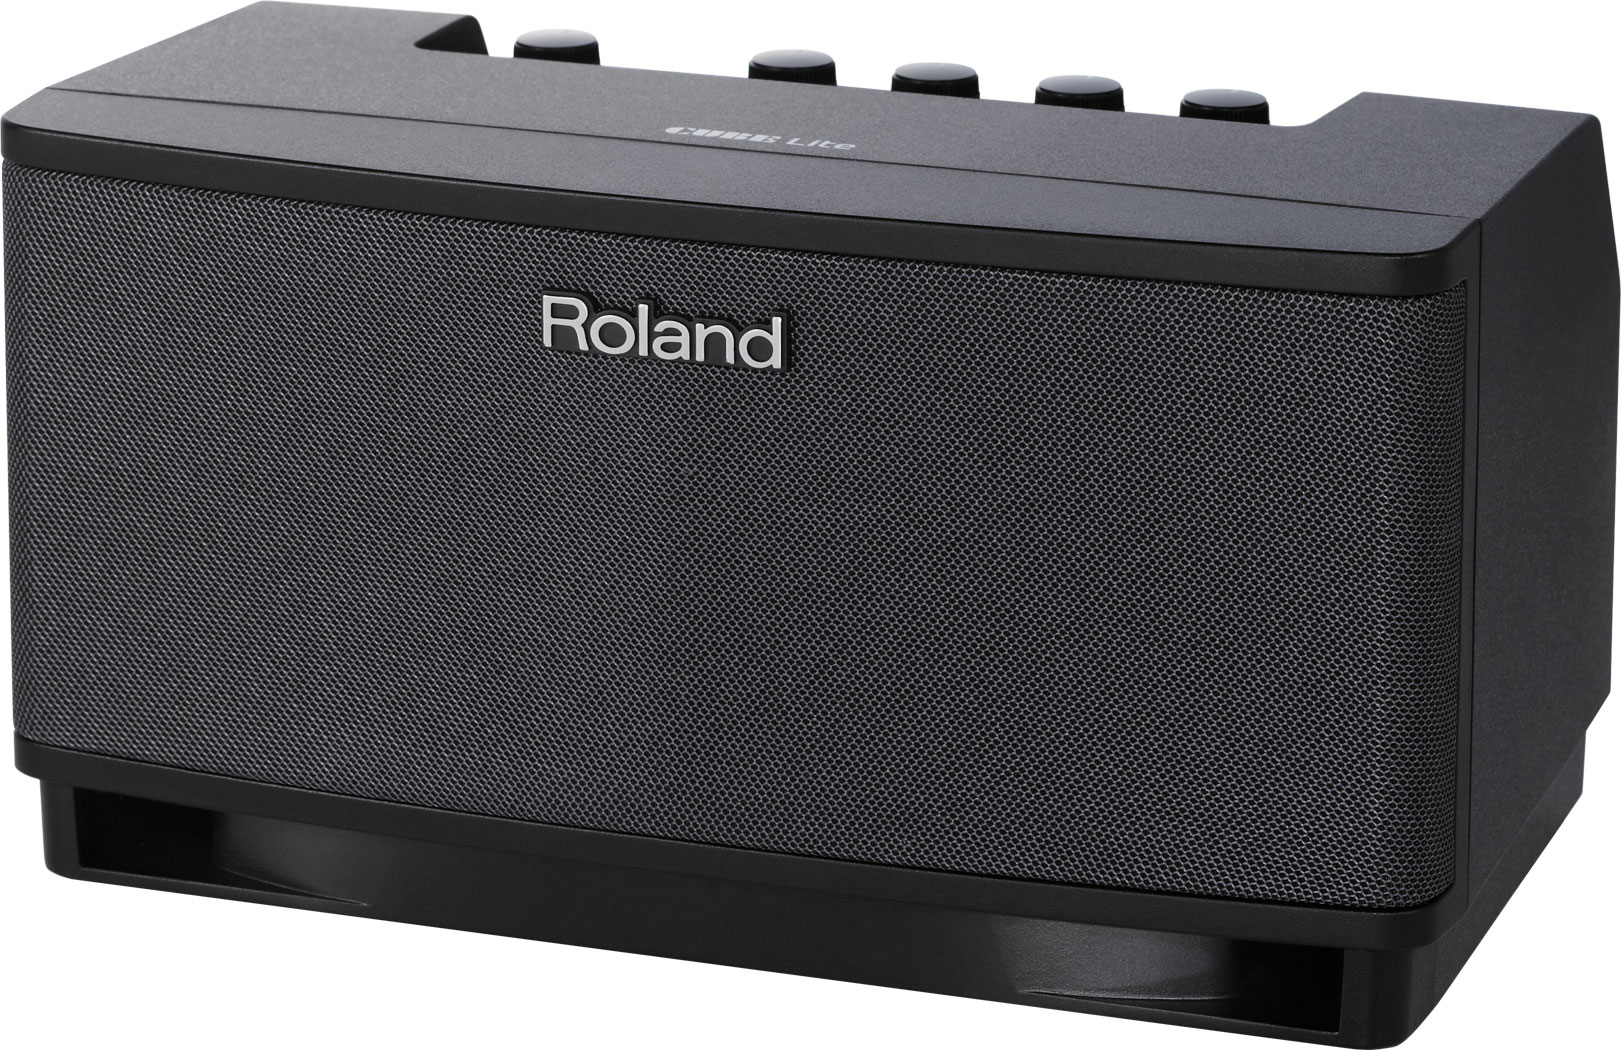 Roland Cube Lite Guitar Amplifier with IOS Interface in Black